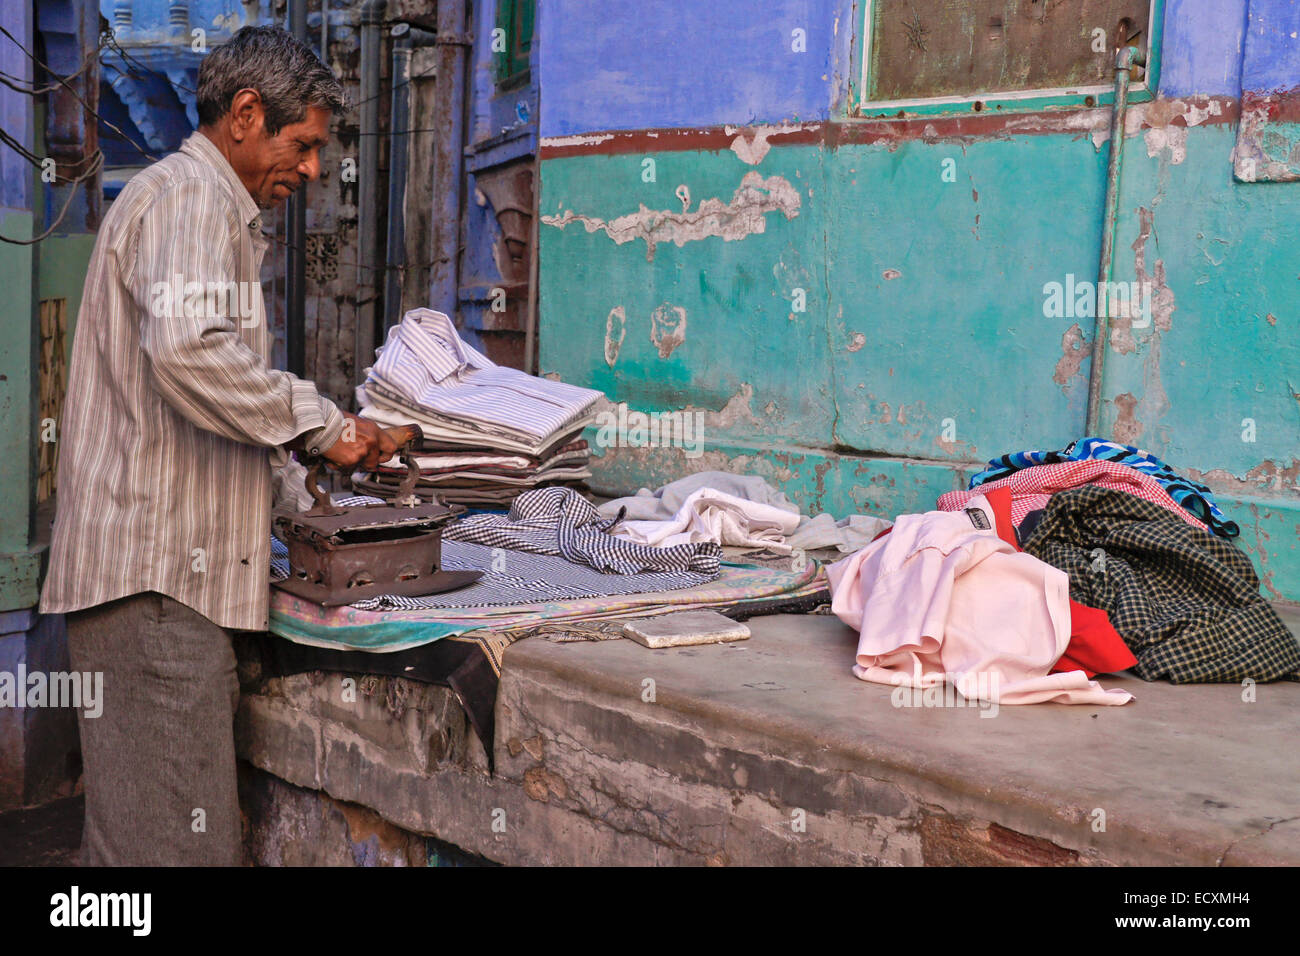 Man ironing clothing outside his home in the Blue City, Jodhpur, Rajasthan, India - Stock Image